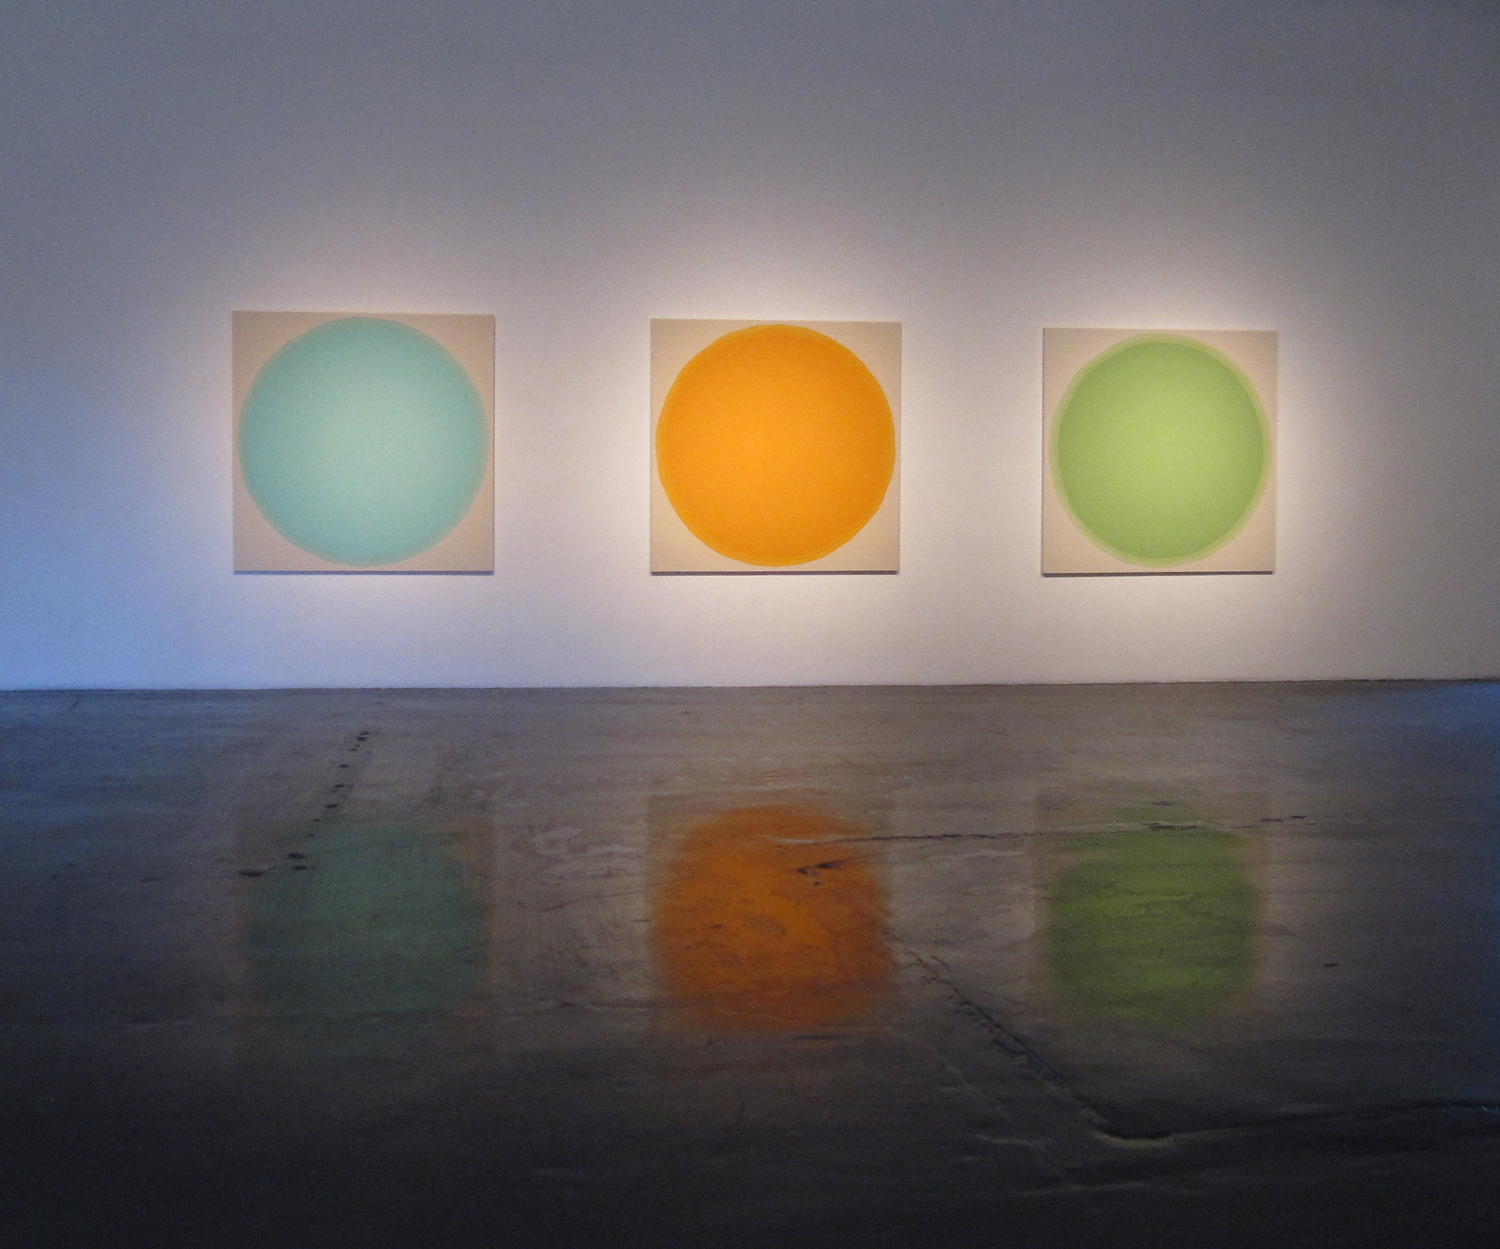 Installation of Circle Paintings, William Turner Gallery